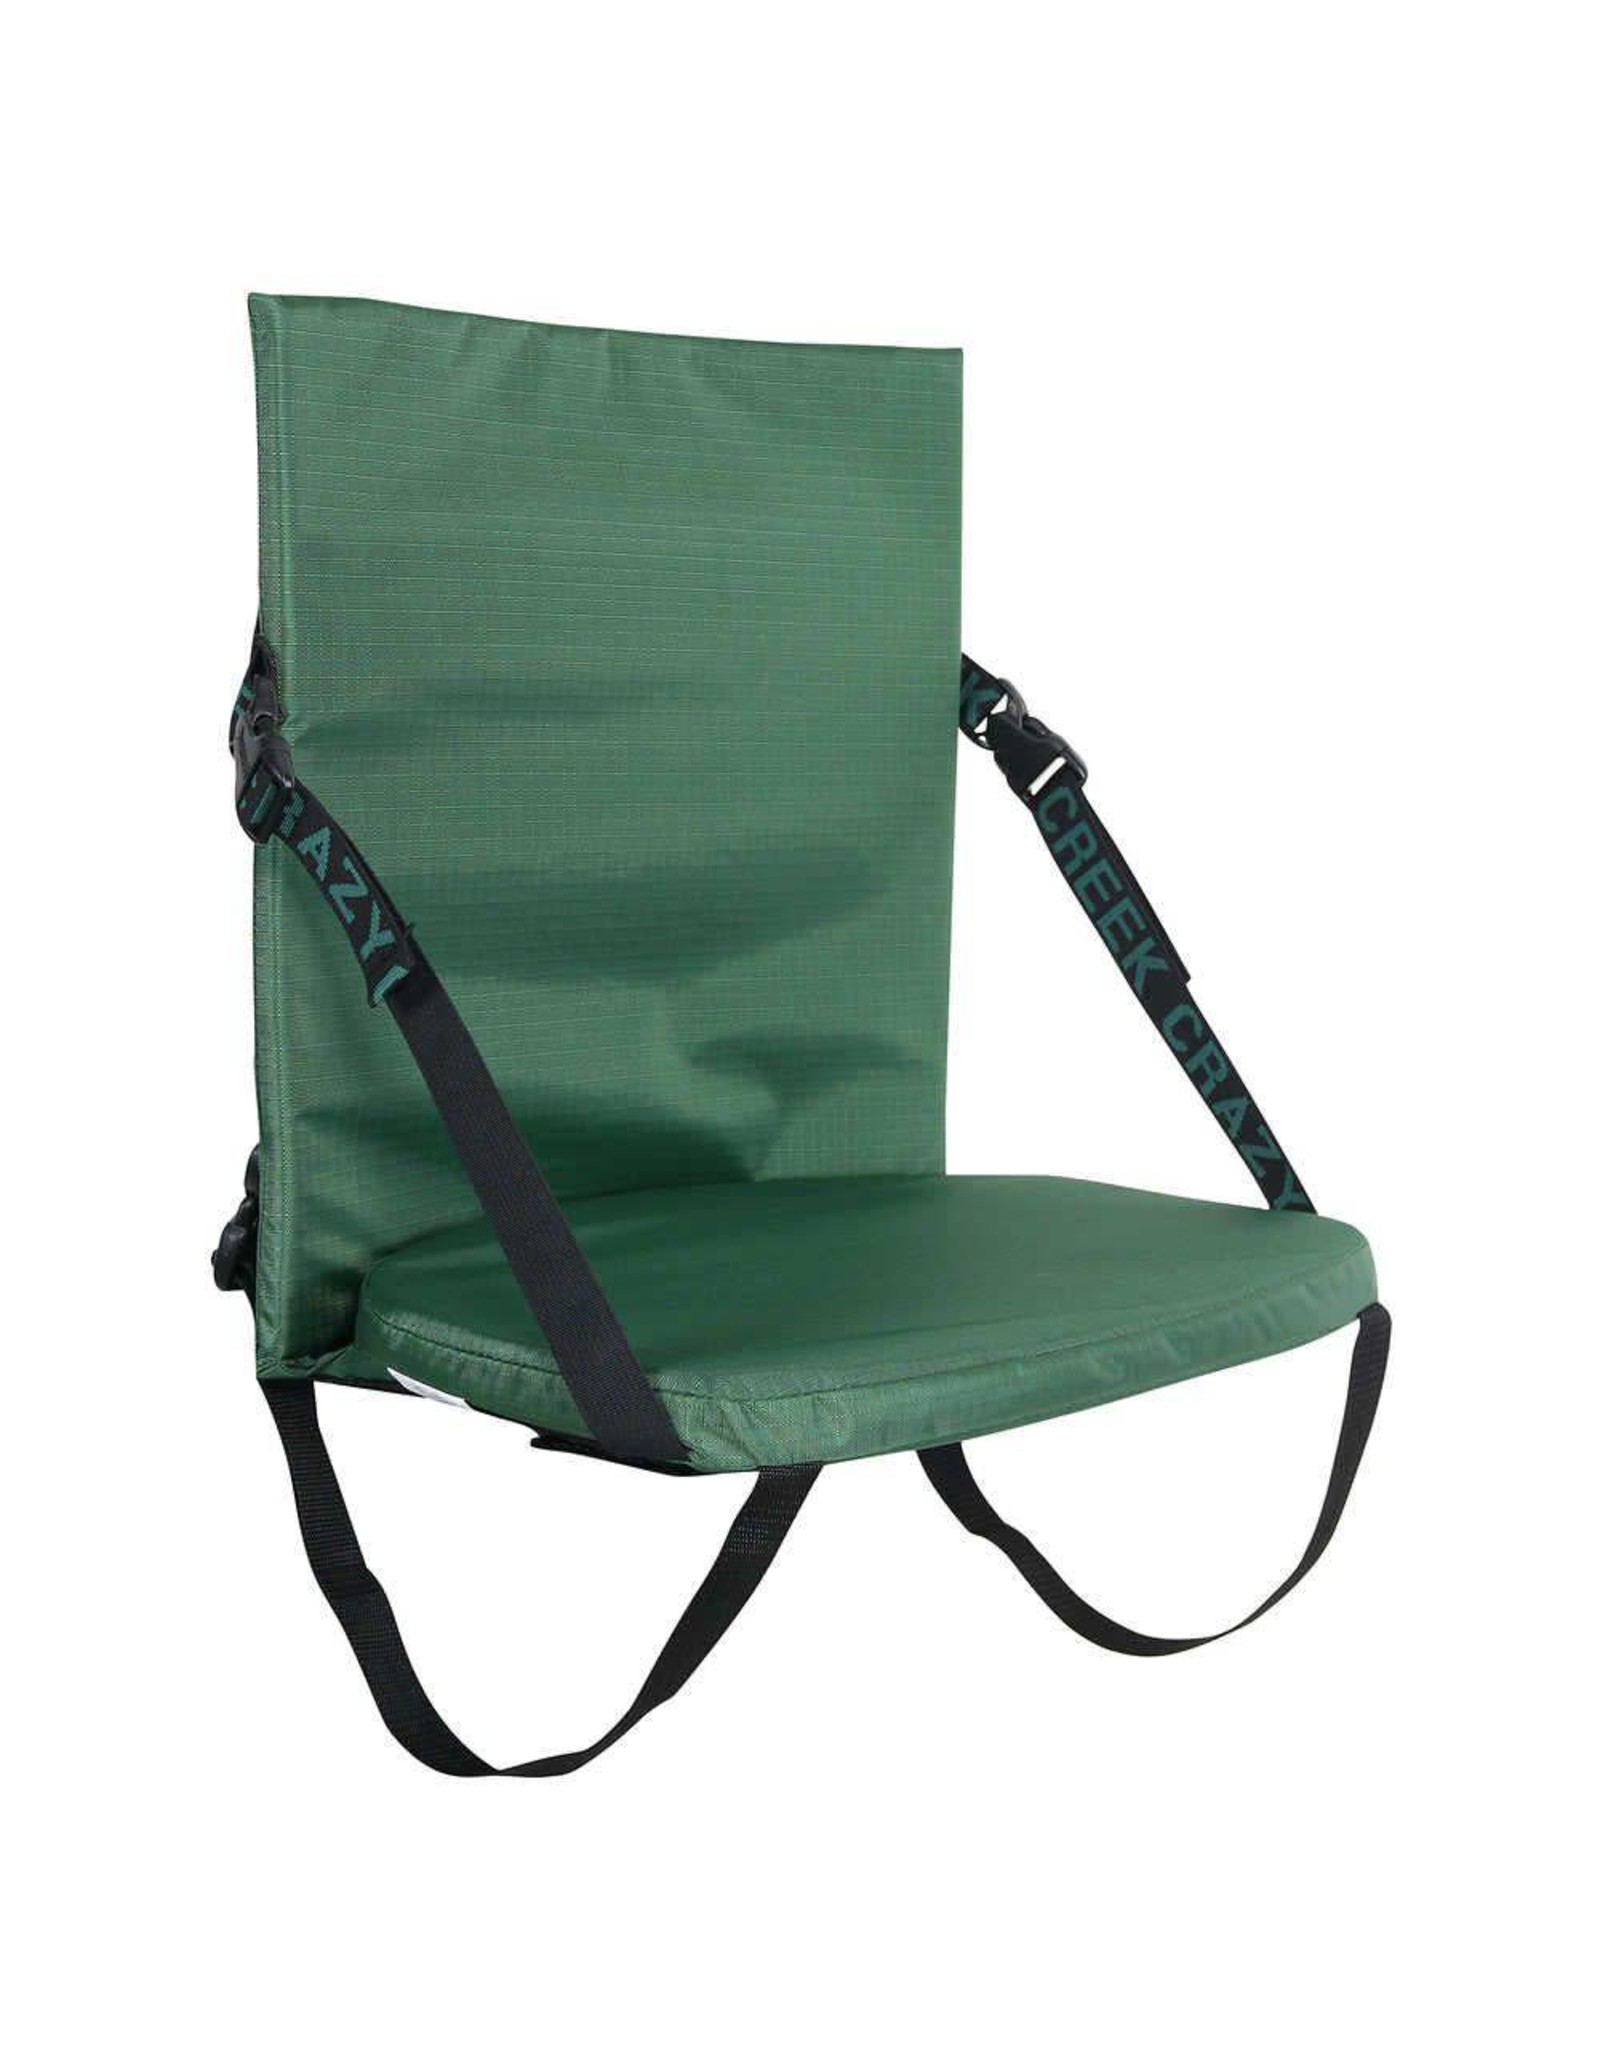 Crazy Creek Canoe Chair lll Forest Green